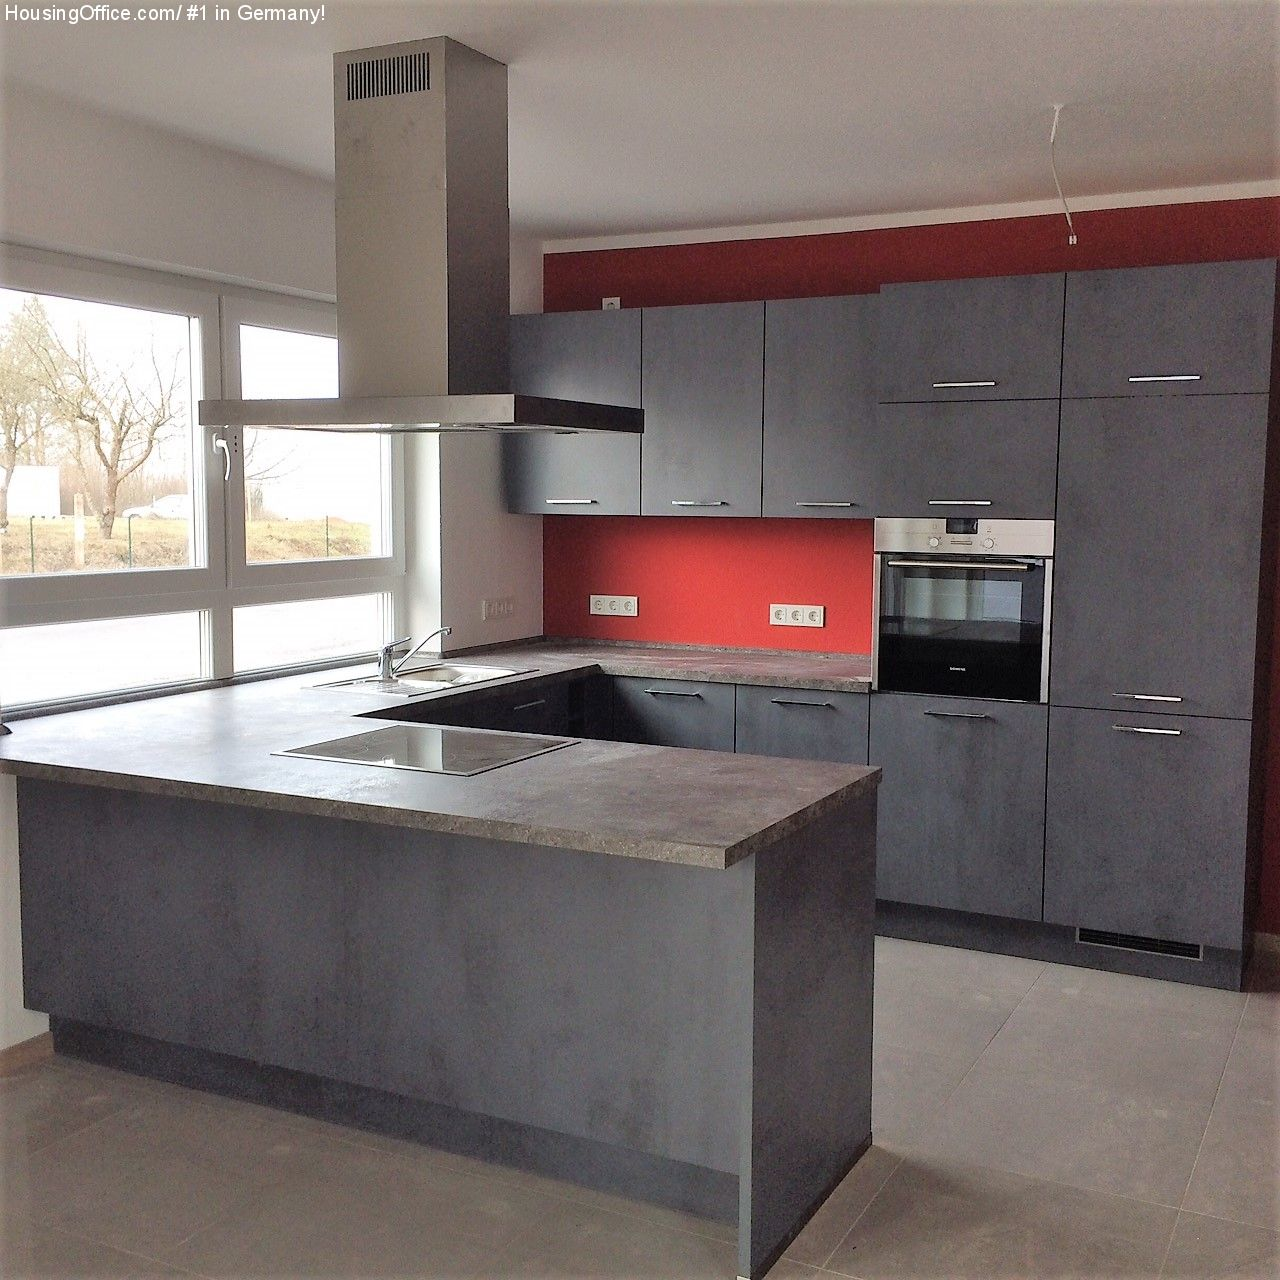 Newest properties - Kaiserslautern - Modern styled home for rent in